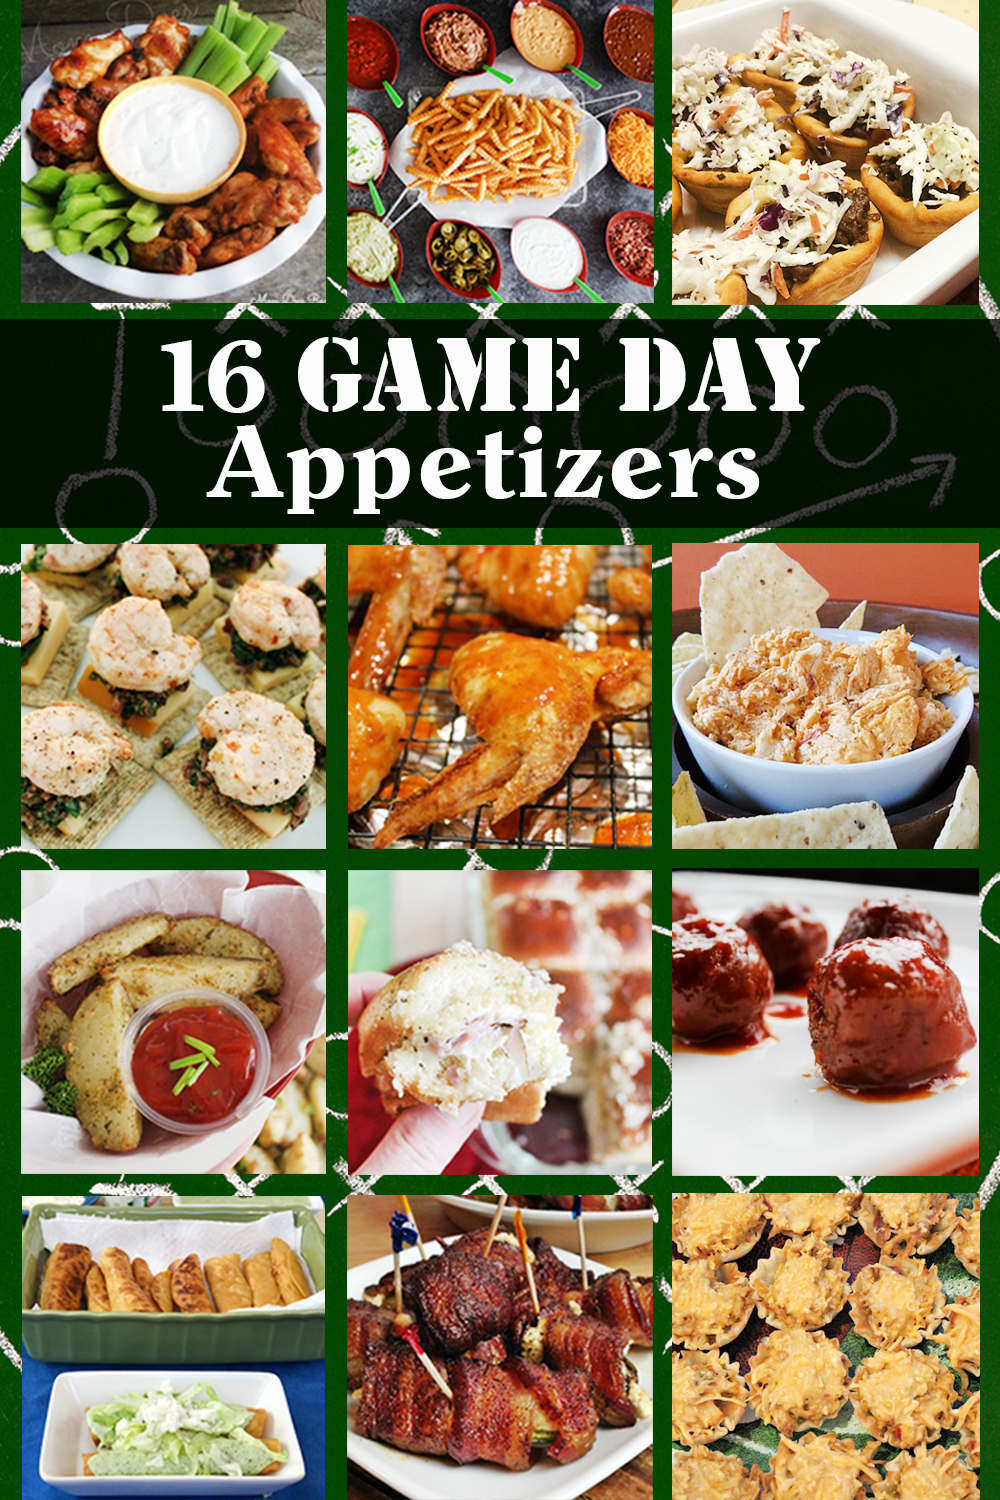 Southern Mom Loves: 16 Awesome Game Day Appetizers To Make